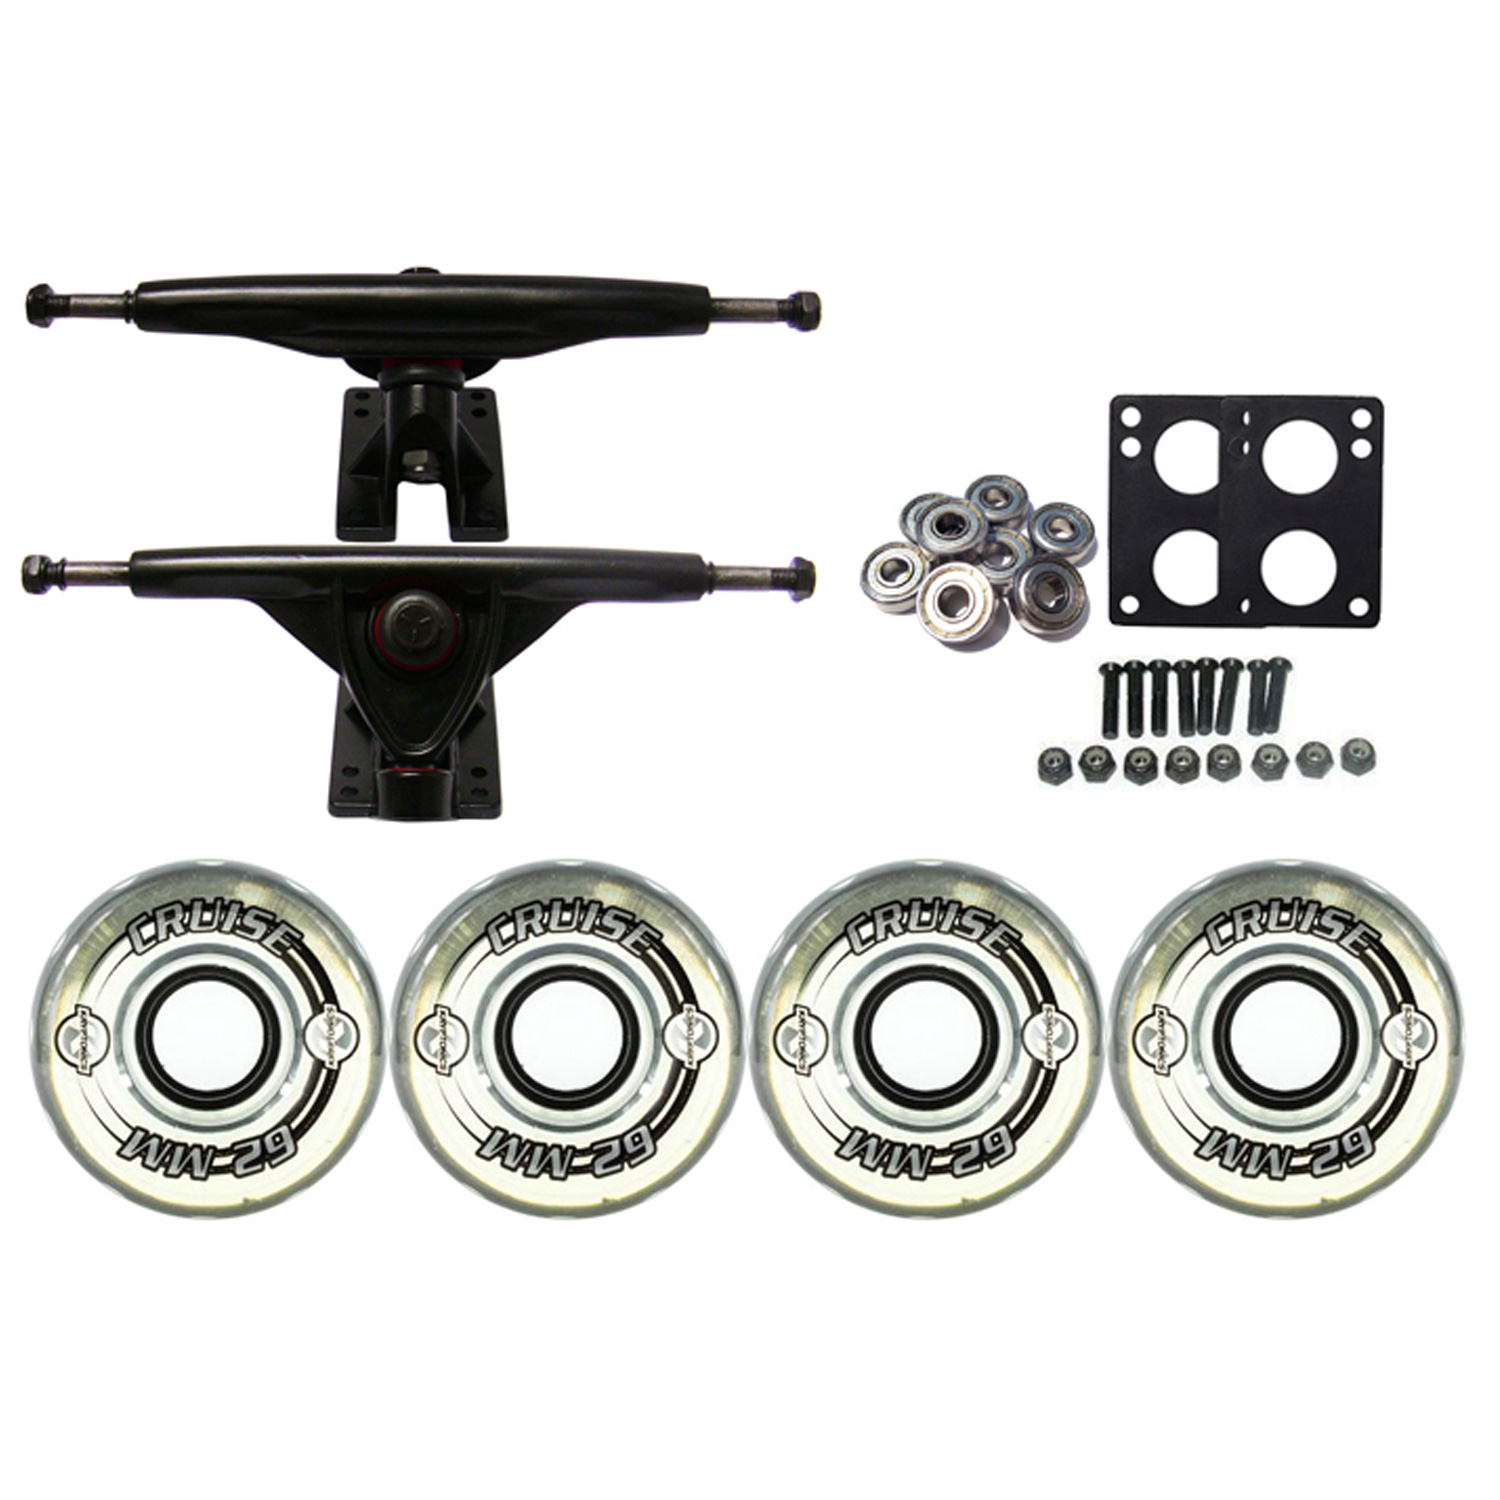 KRYPTONICS CRUISE Truck Wheel Pack 62mm CLEAR 180mm Black